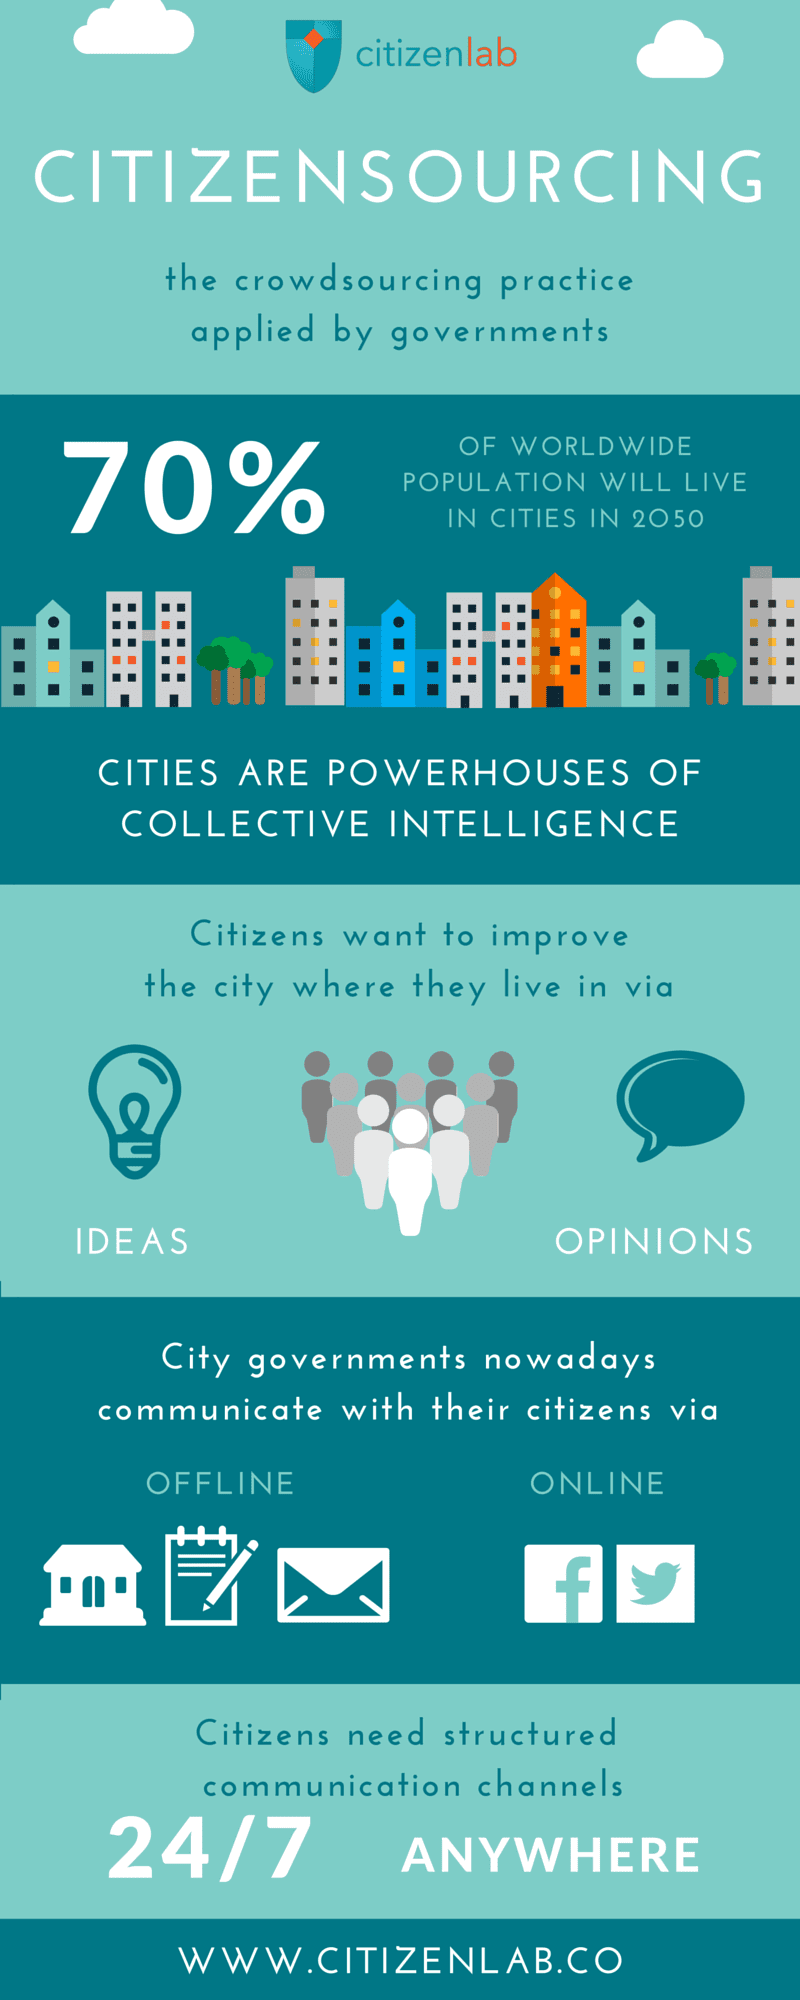 What is 'citizensourcing'?